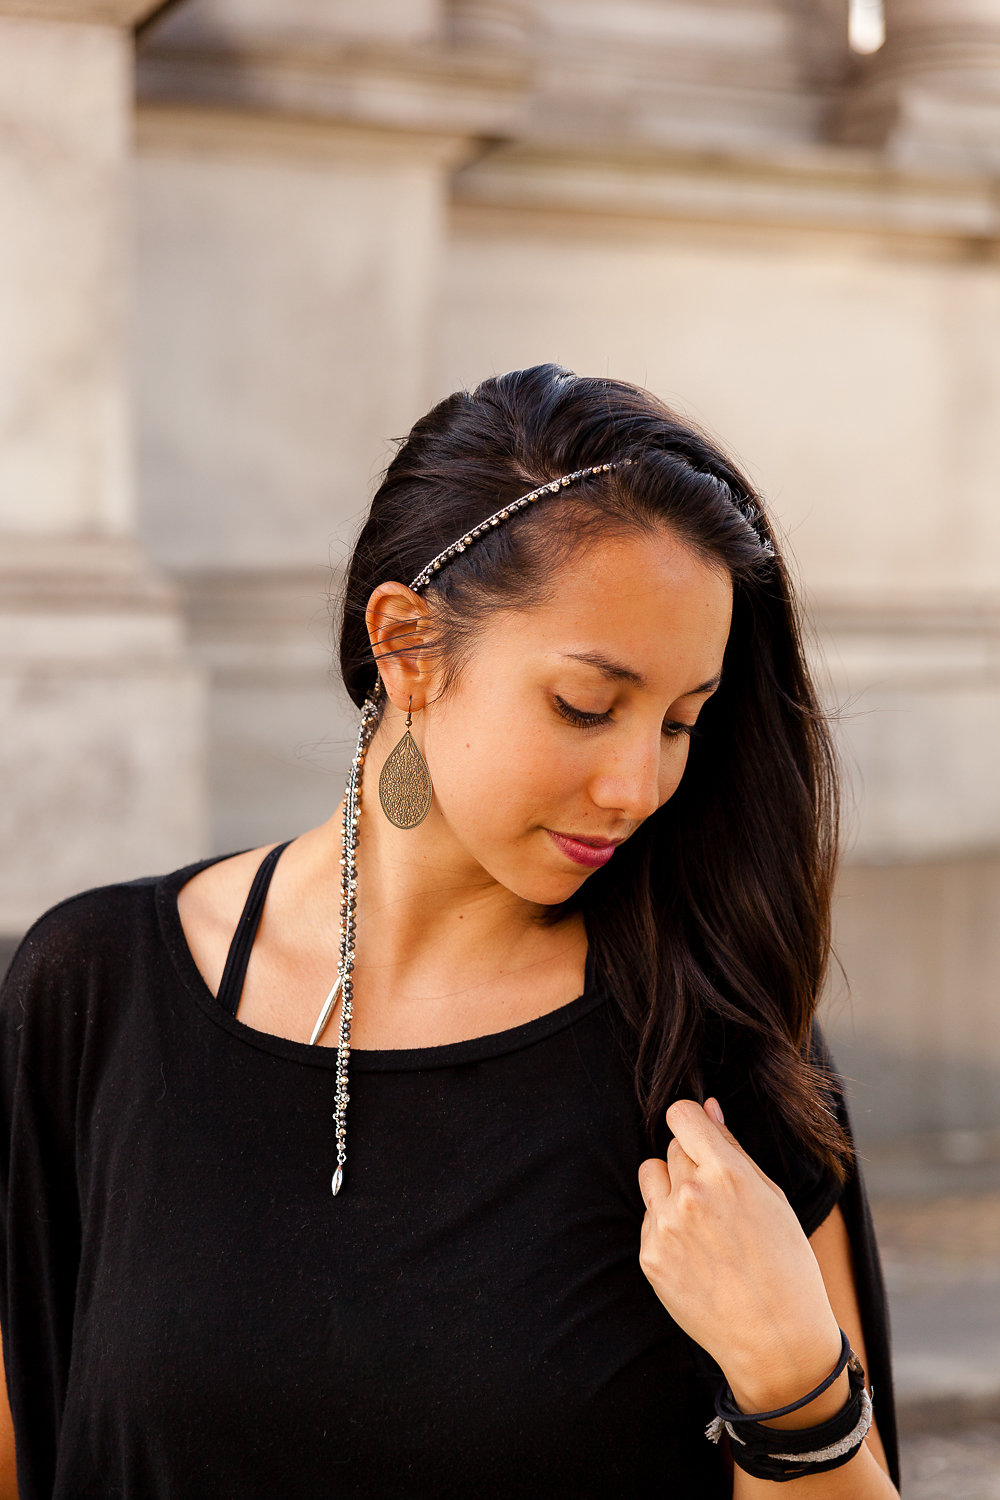 The headband - Tie the necklace around your hair to sweep it away from yourface. Then place a knot in the back to keep things in place. Let the rest of the strand hang for a feminine appeal.(modeled by my lovely photographer, Kaiya www.katieyuen.me)